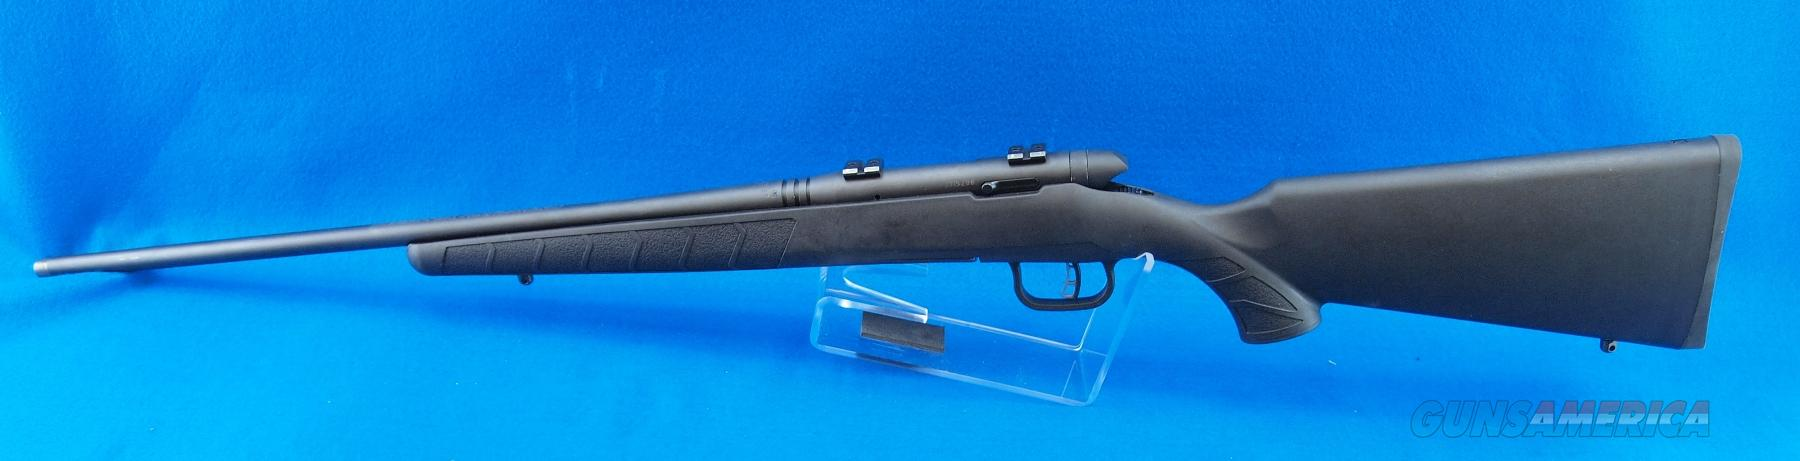 Savage Arms B Mag .17 WSM Bolt-Action Rimfire Rifle  Guns > Rifles > Savage Rifles > Accutrigger Models > Sporting